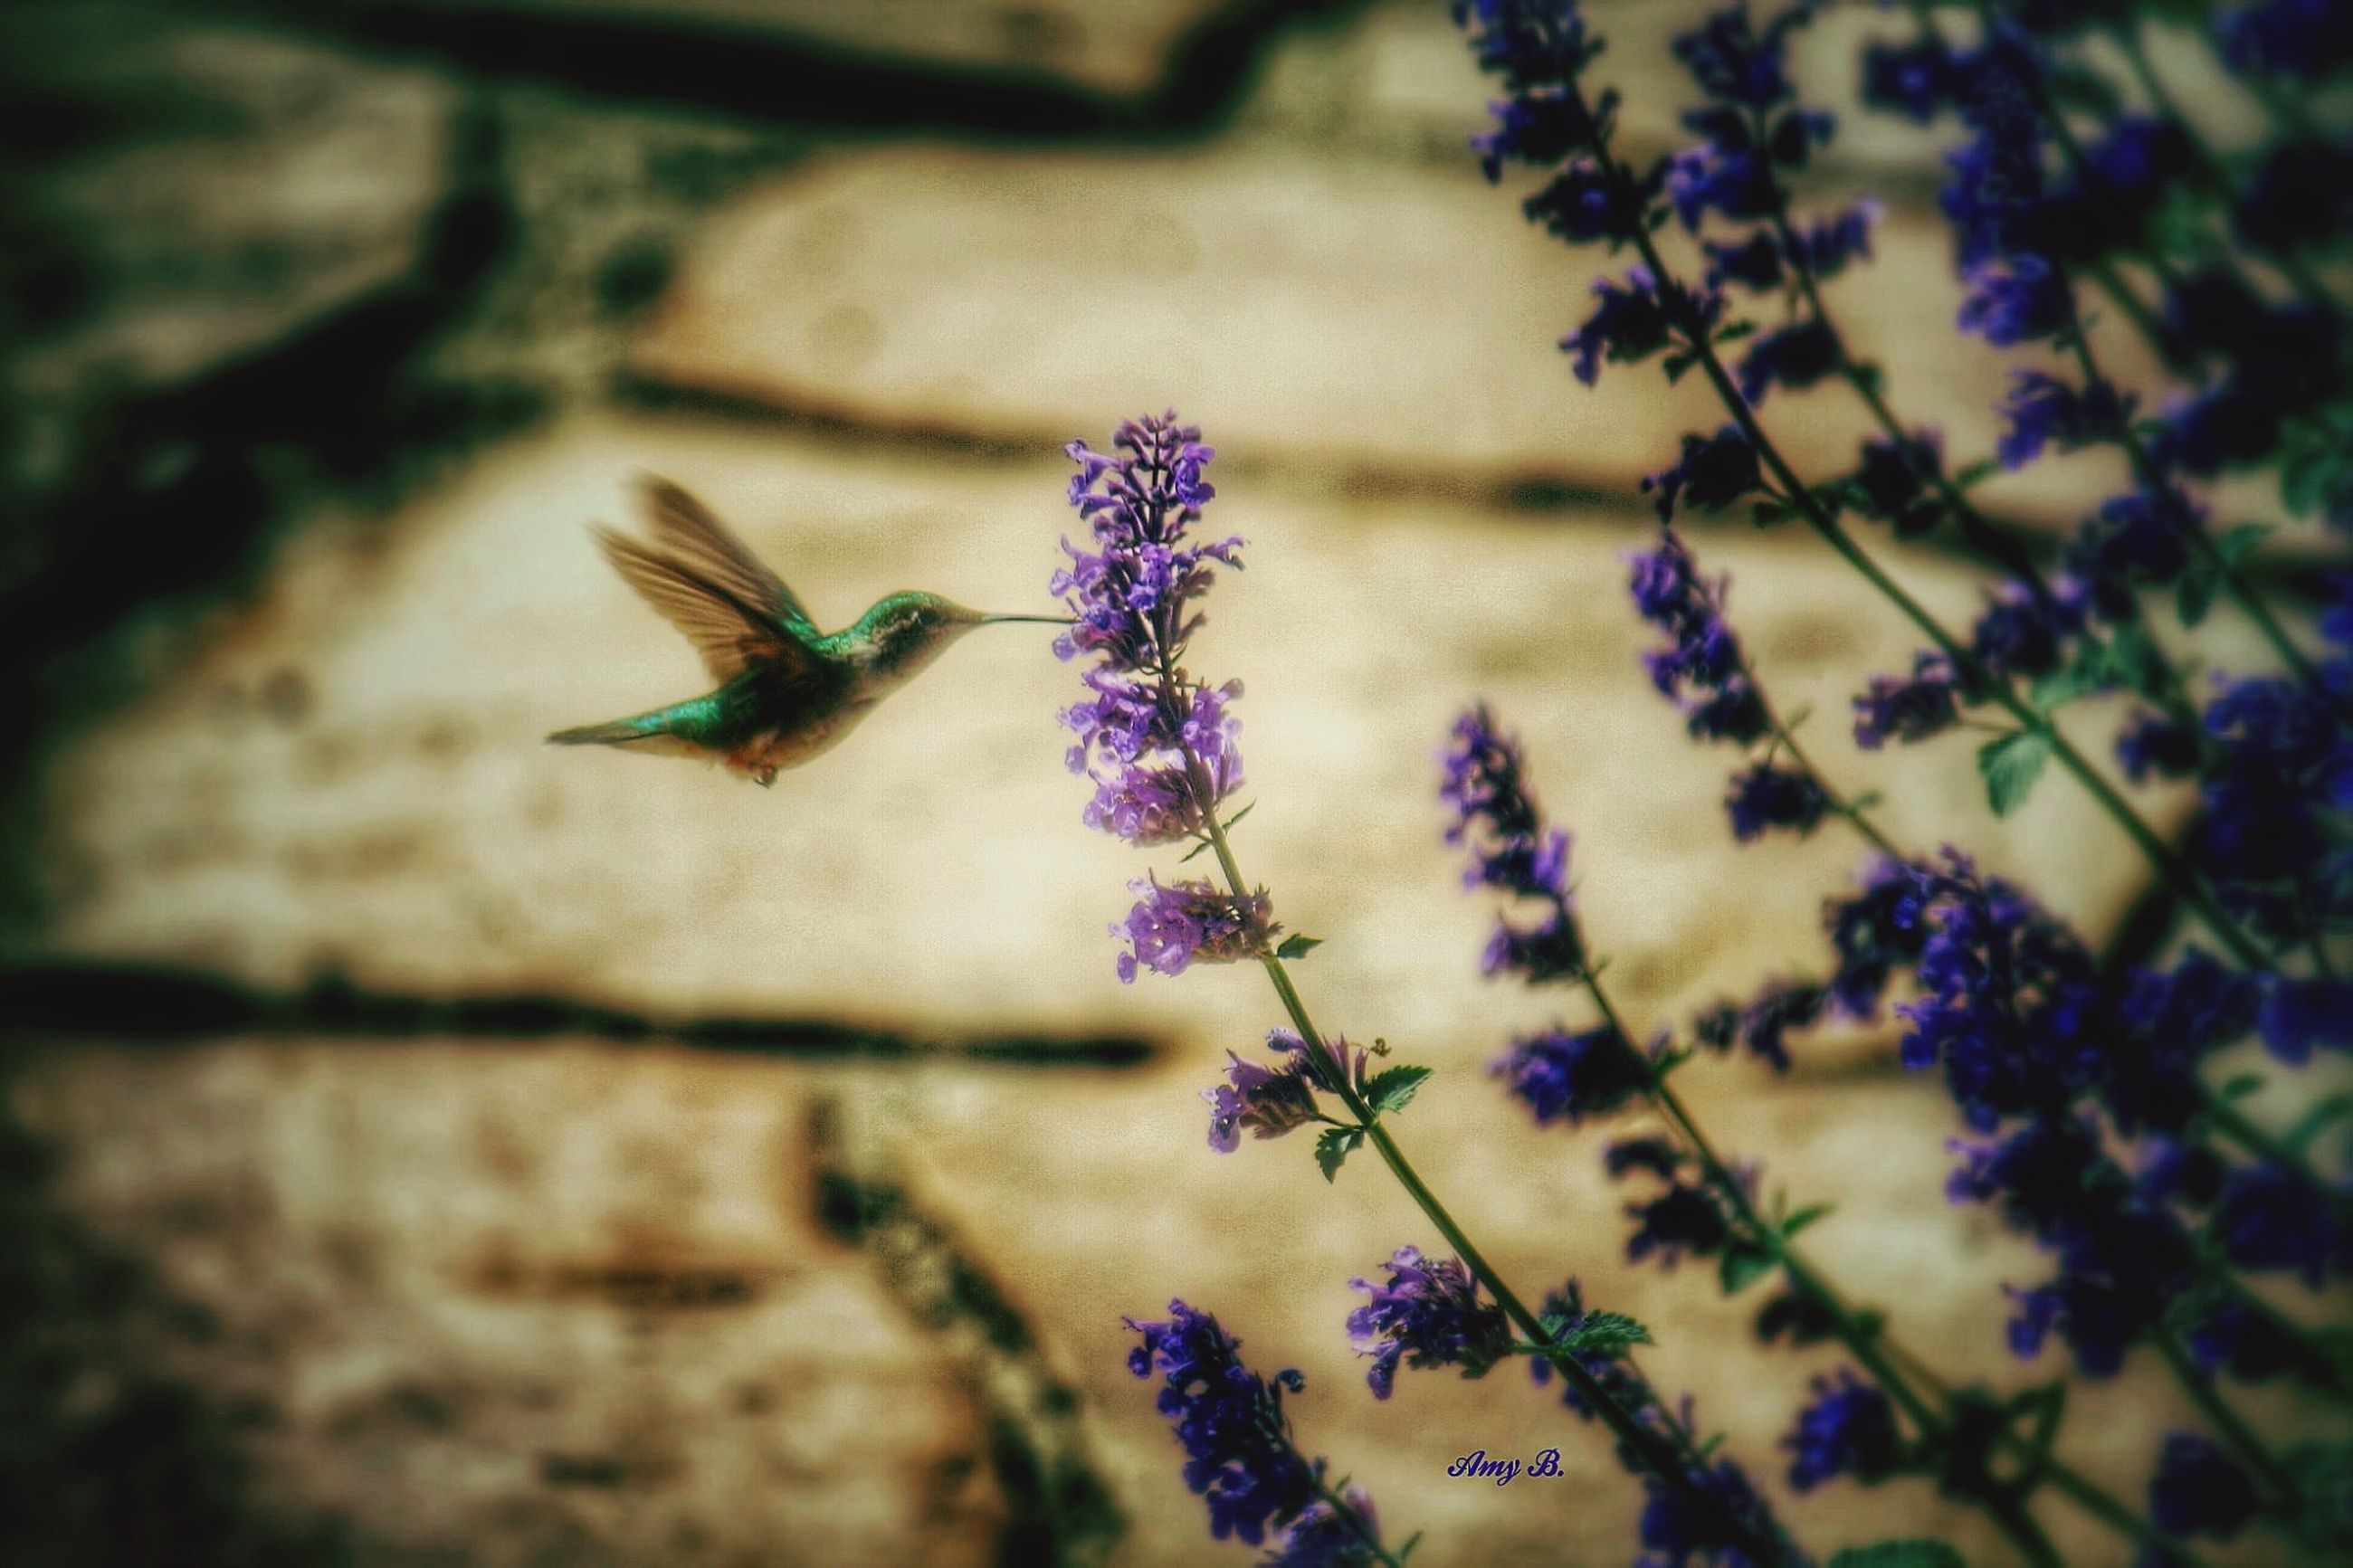 flower, insect, close-up, fragility, one animal, growth, animals in the wild, animal themes, selective focus, plant, nature, purple, wildlife, focus on foreground, freshness, beauty in nature, petal, outdoors, day, no people